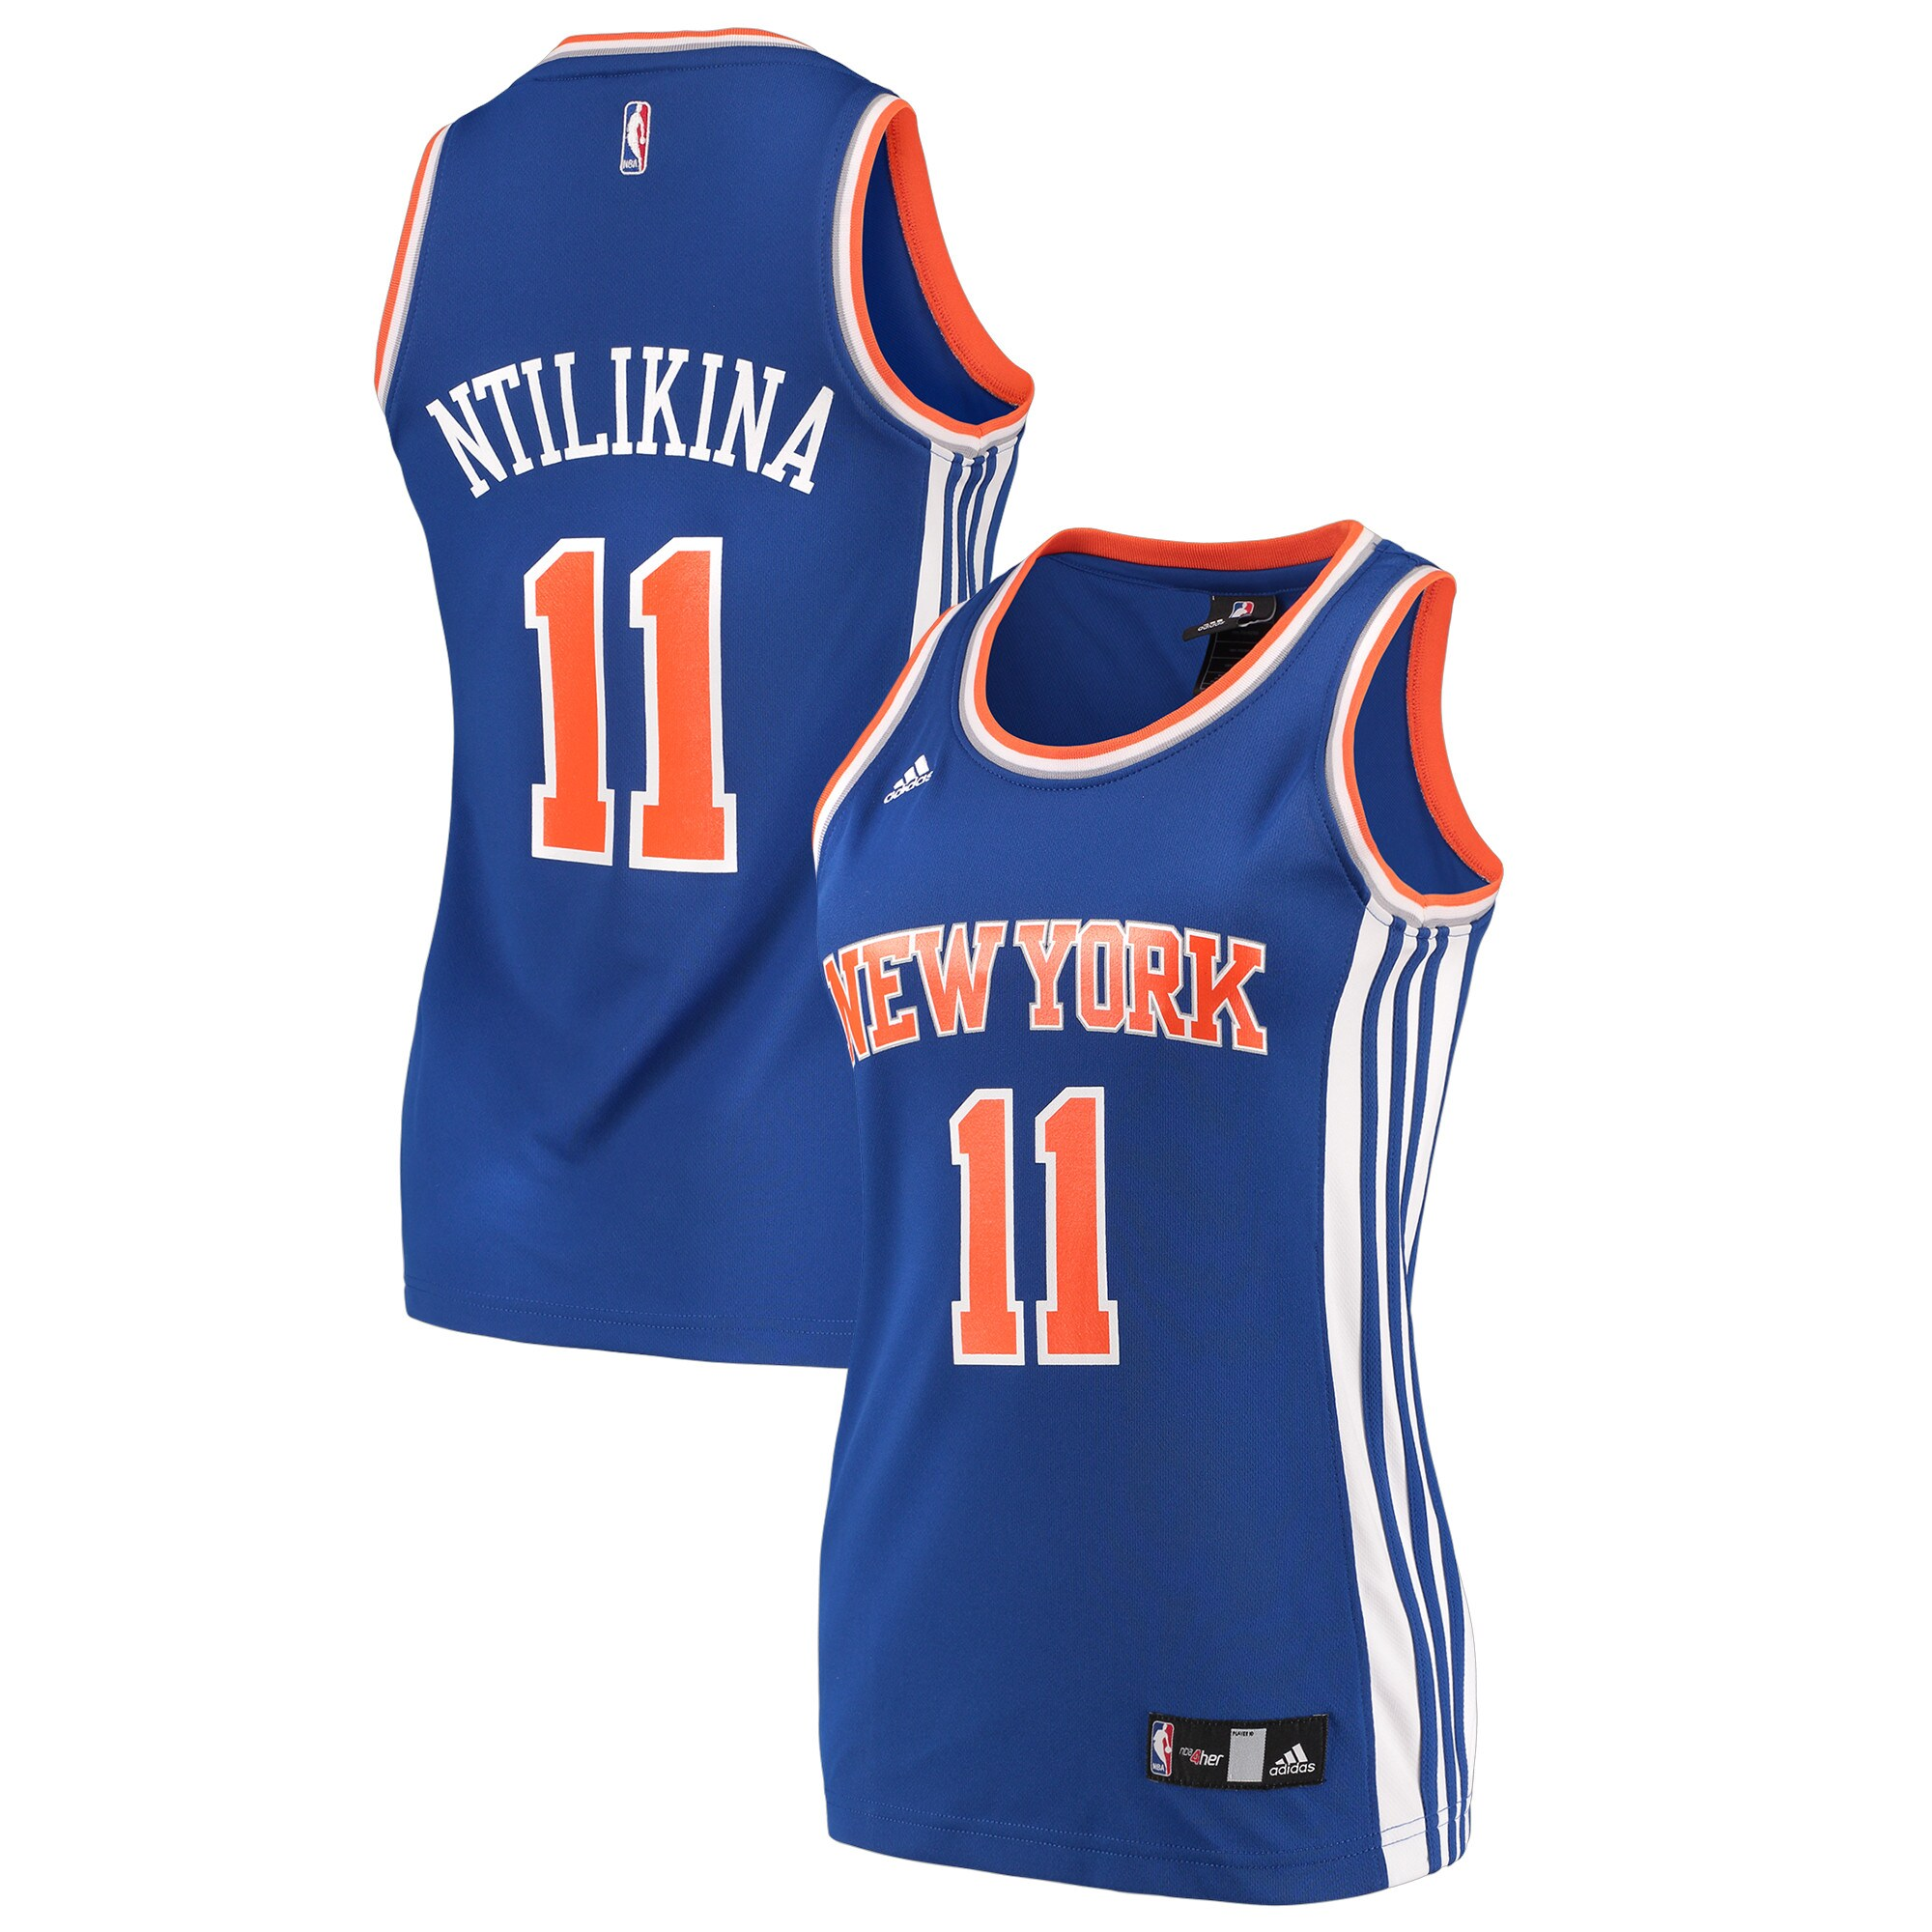 Frank Ntilikina New York Knicks adidas Women's Replica Jersey - Blue